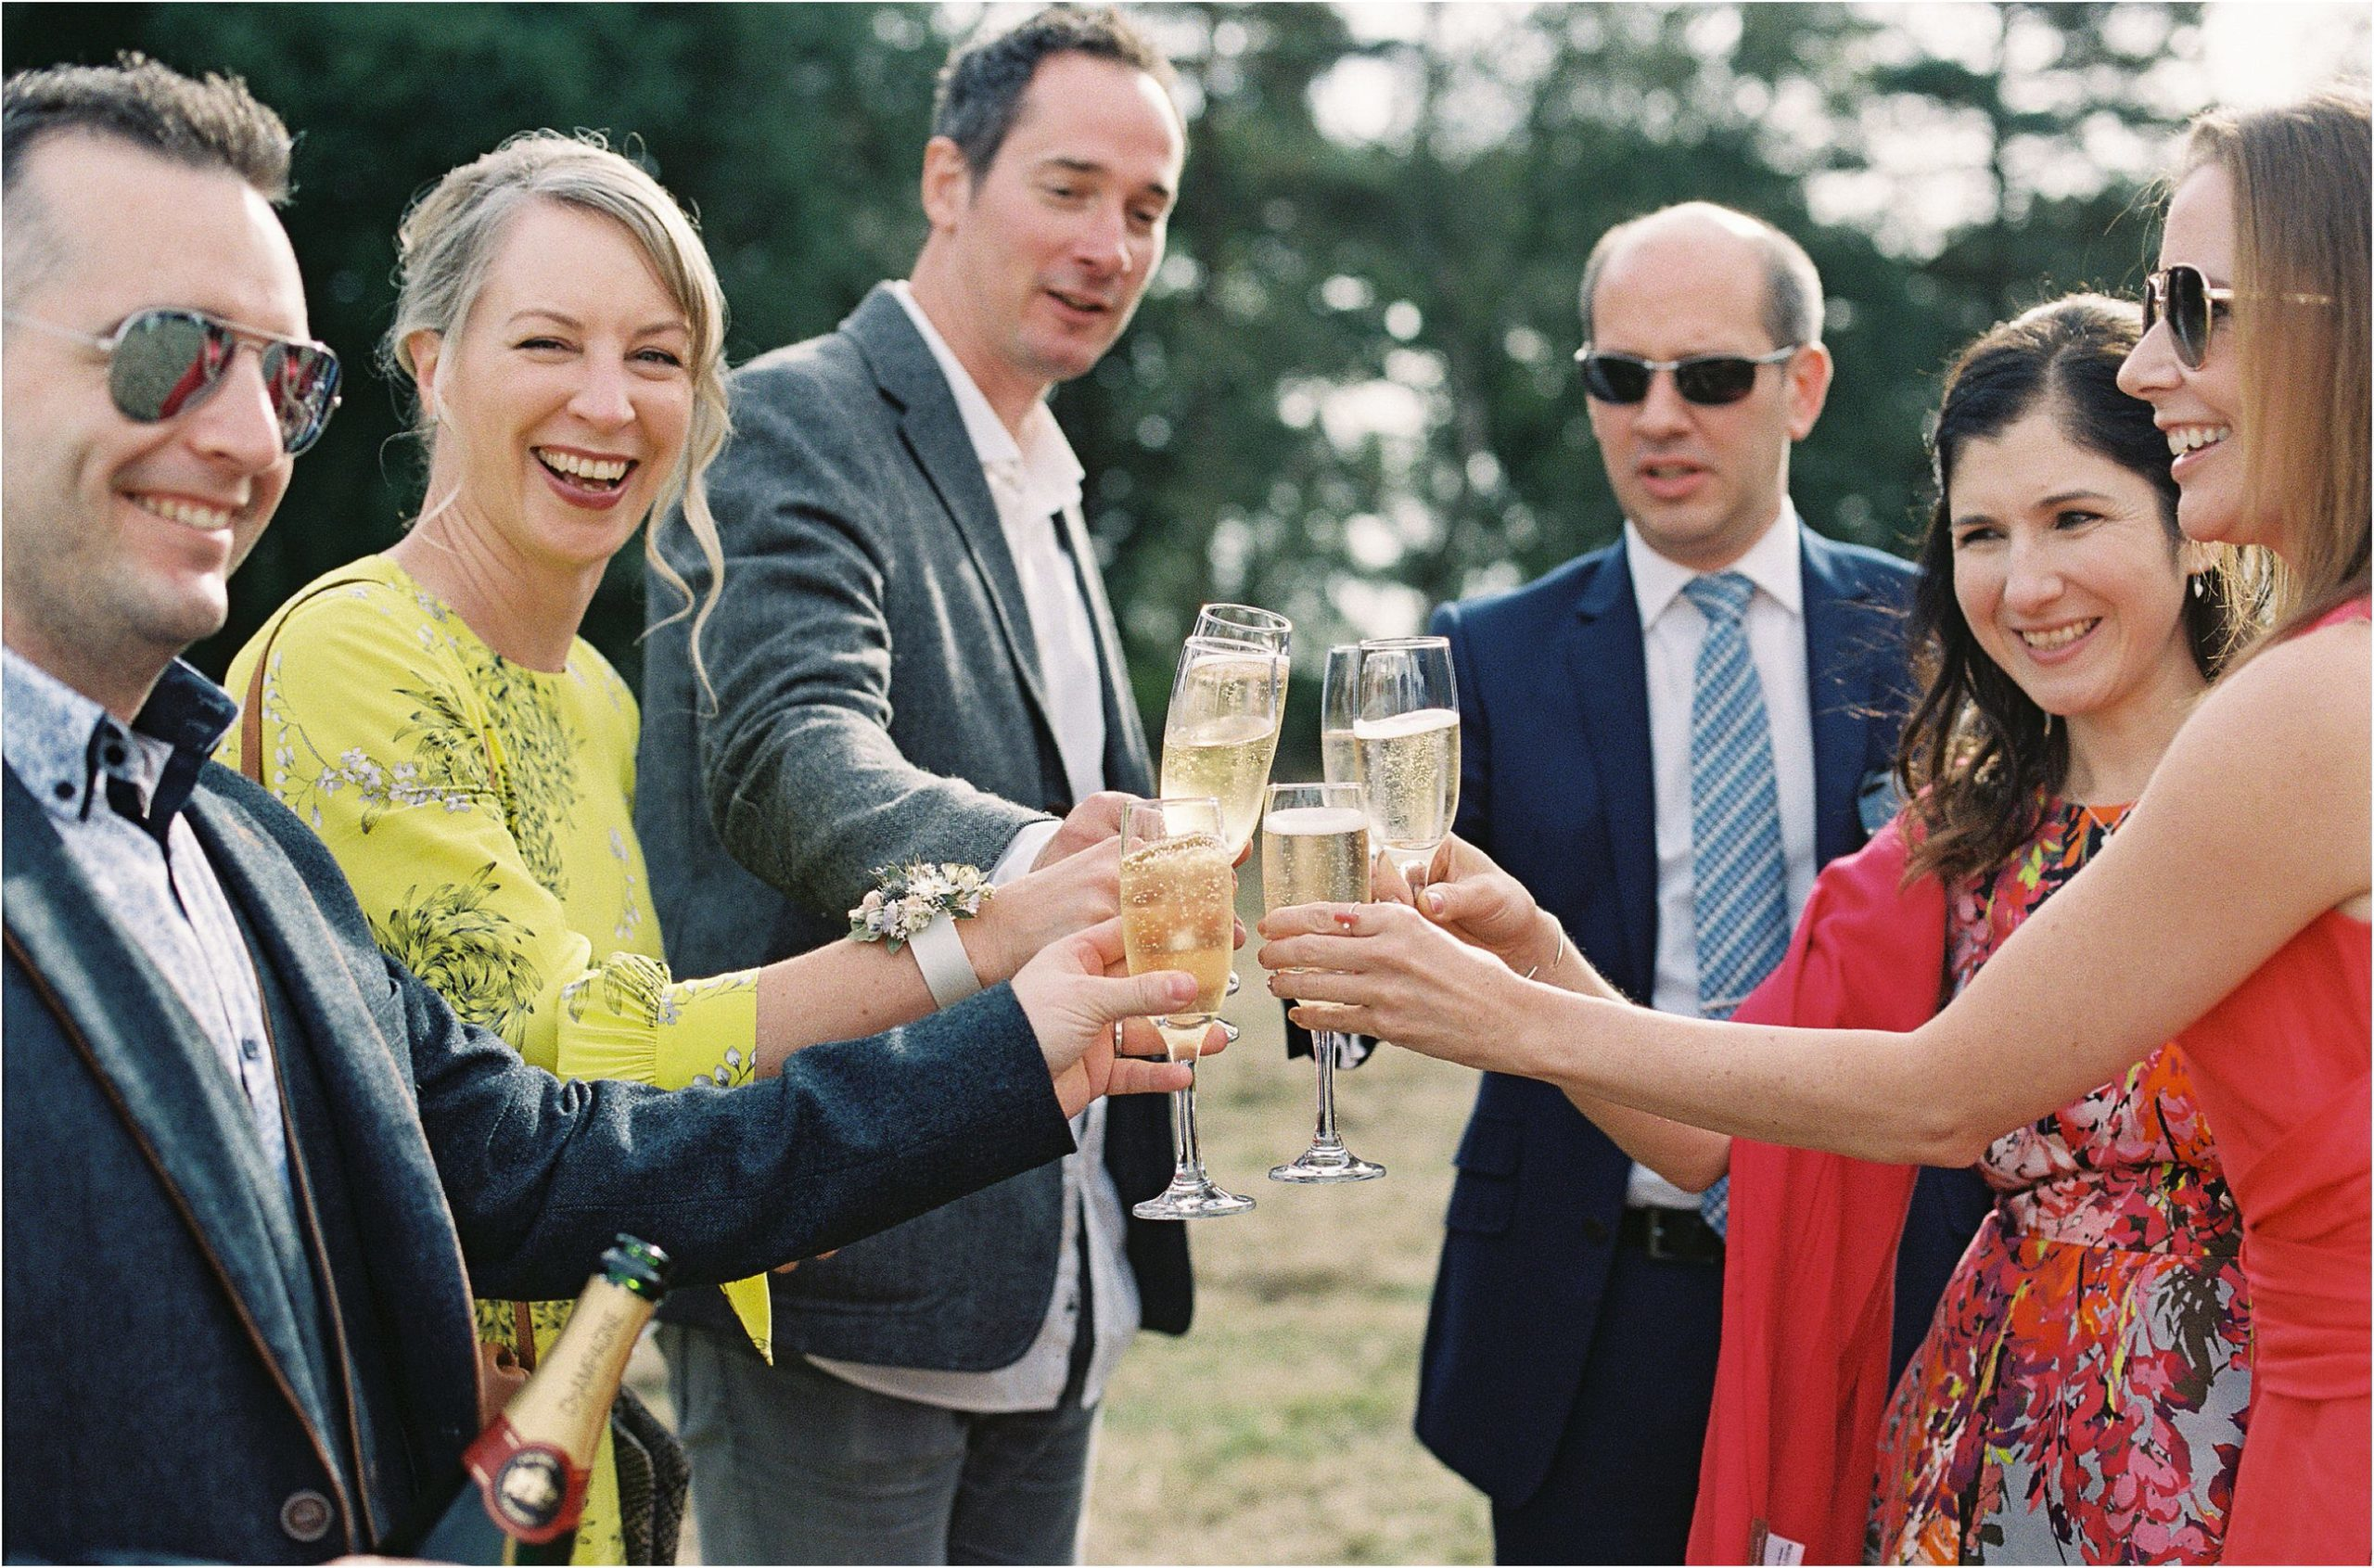 guests toasting at wedding